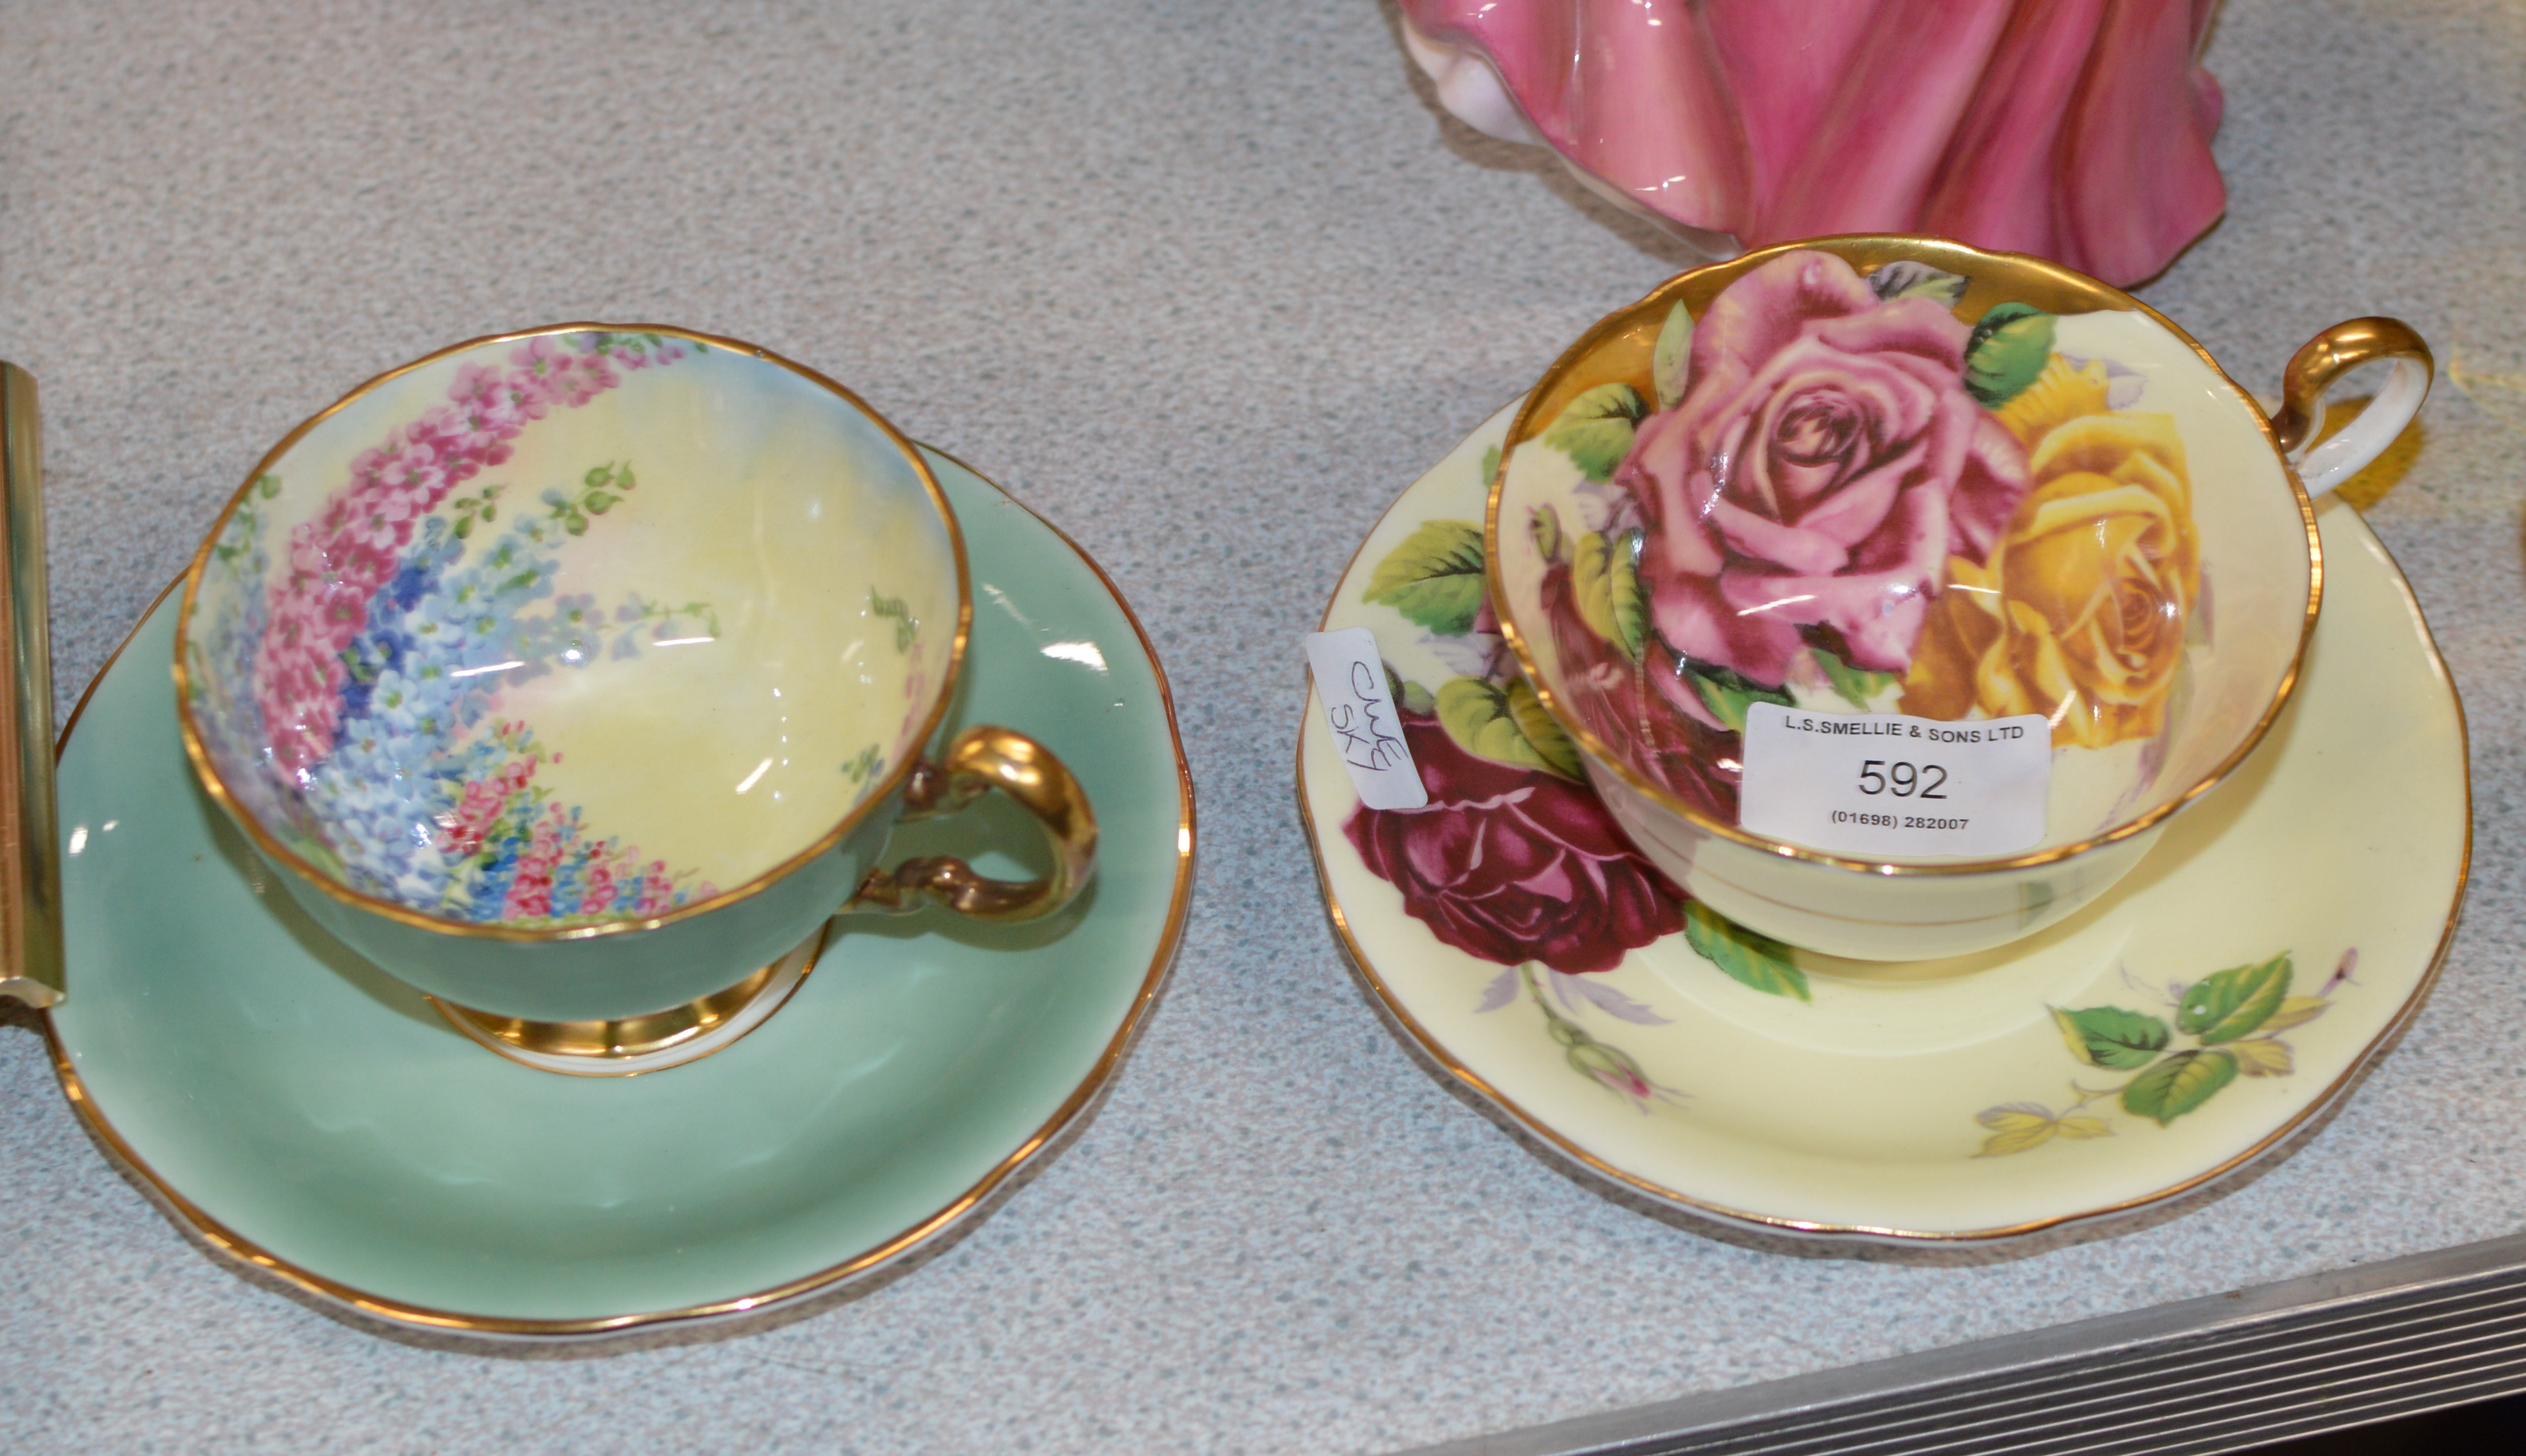 Lot 592 - 2 AYNSLEY CABINET CUP & SAUCER SETS